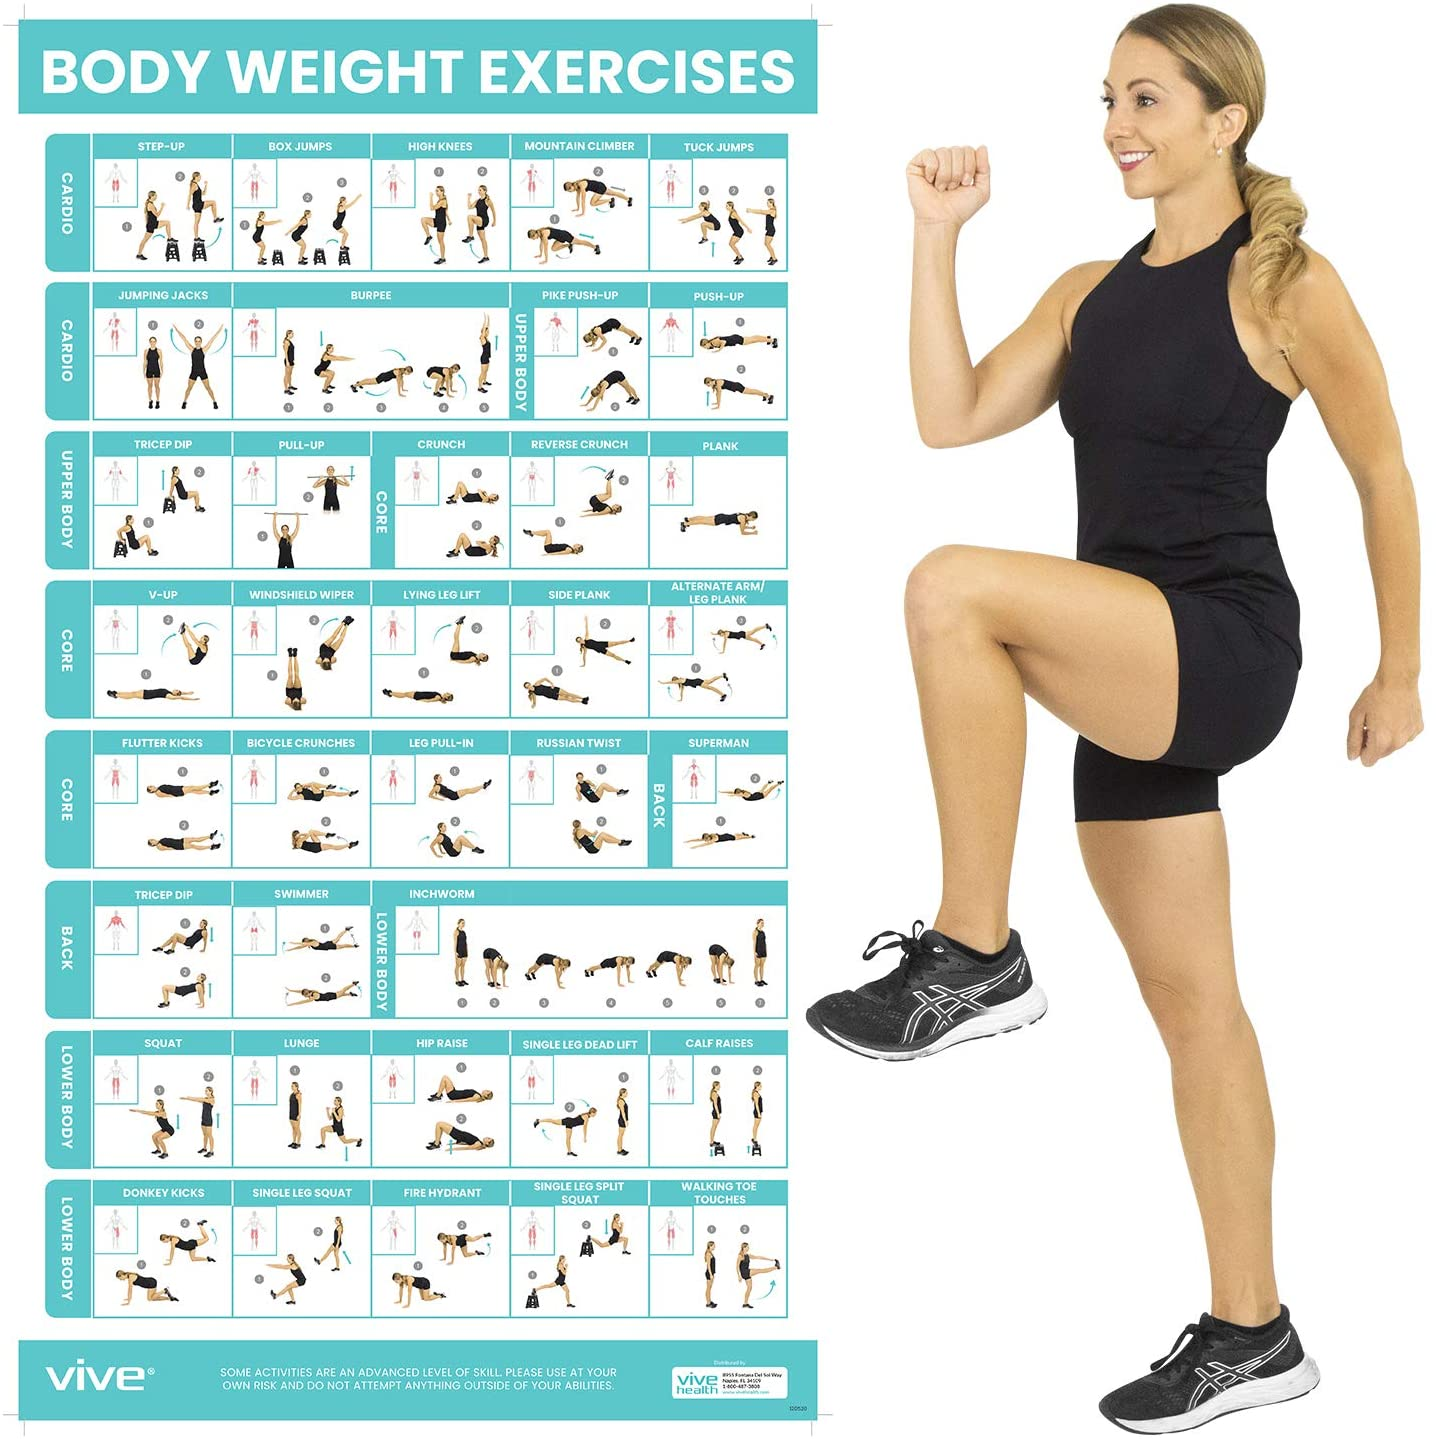 Vive Body Weight Workout Poster   Bodyweight Exercises For Home Gym    Laminated Hitt Chart For Abs, Glute, Core, Legs, Arms, Back   No Equipment  ...